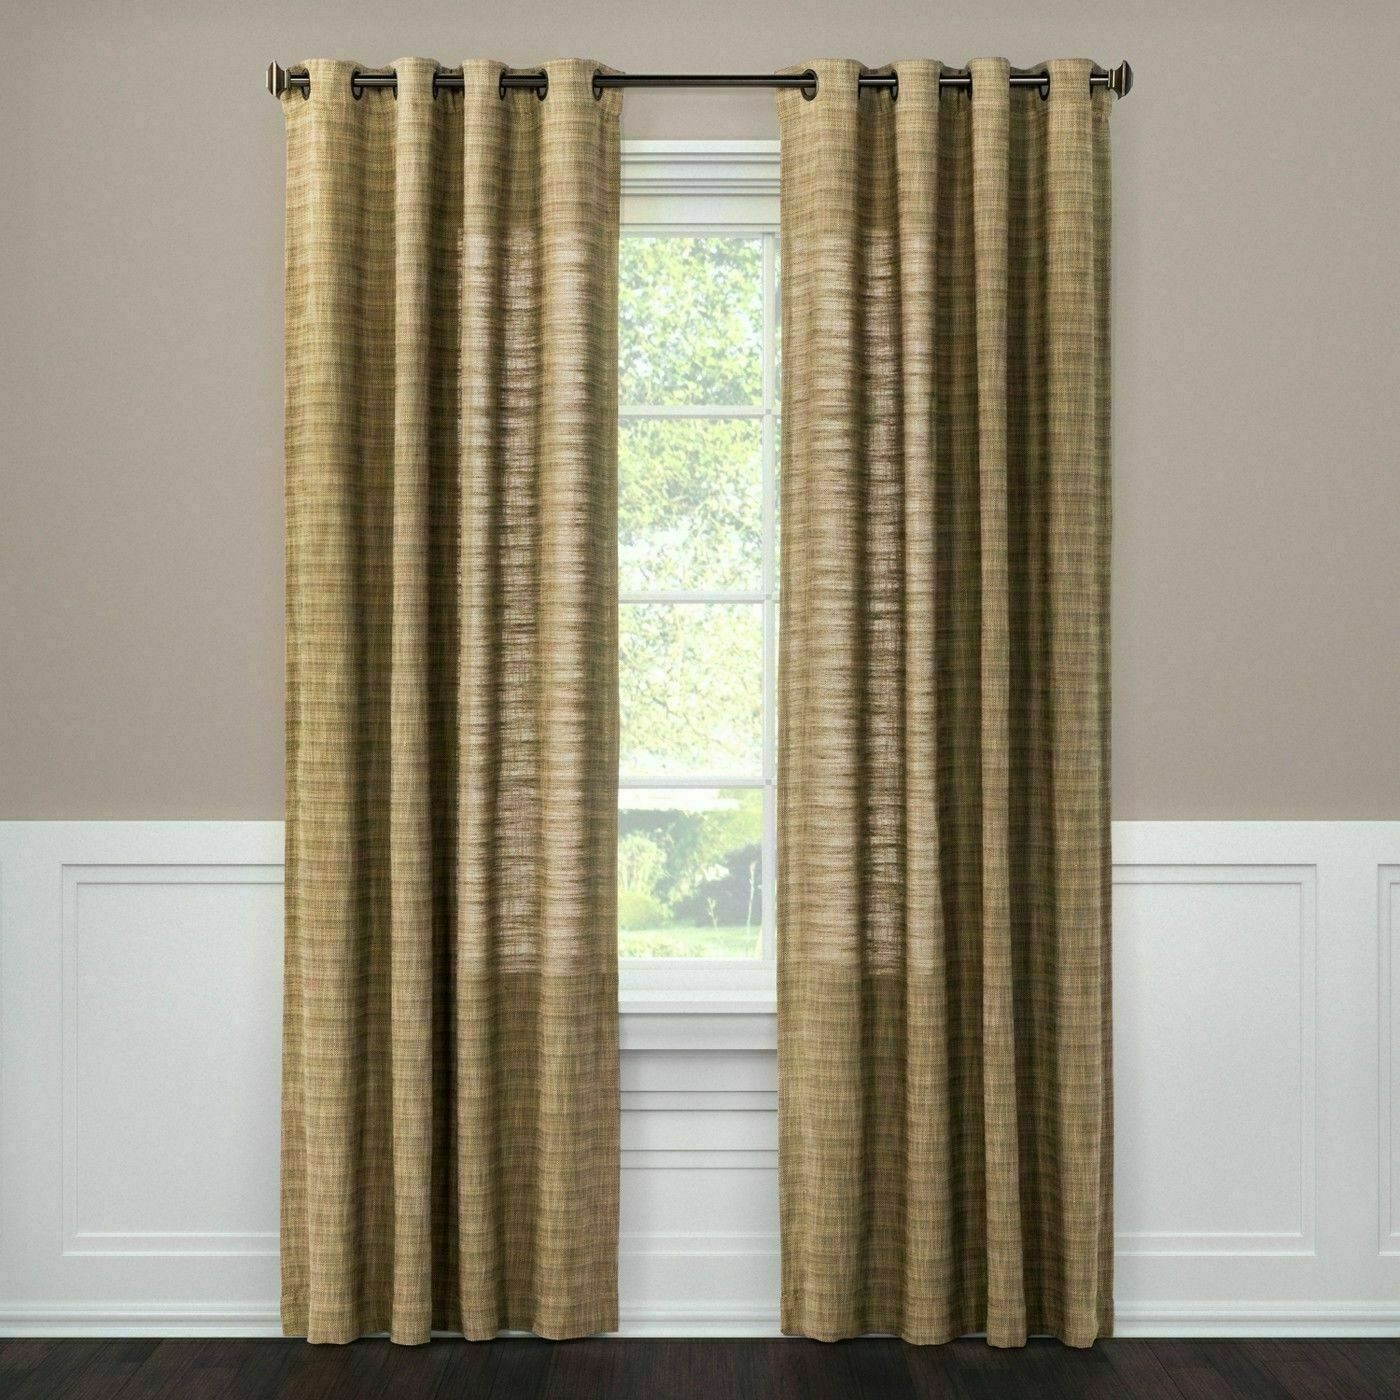 "Threshold Textured Weave Window Curtain Panel 54"" x 84"" Grommet Top Brown NEW - $29.69"